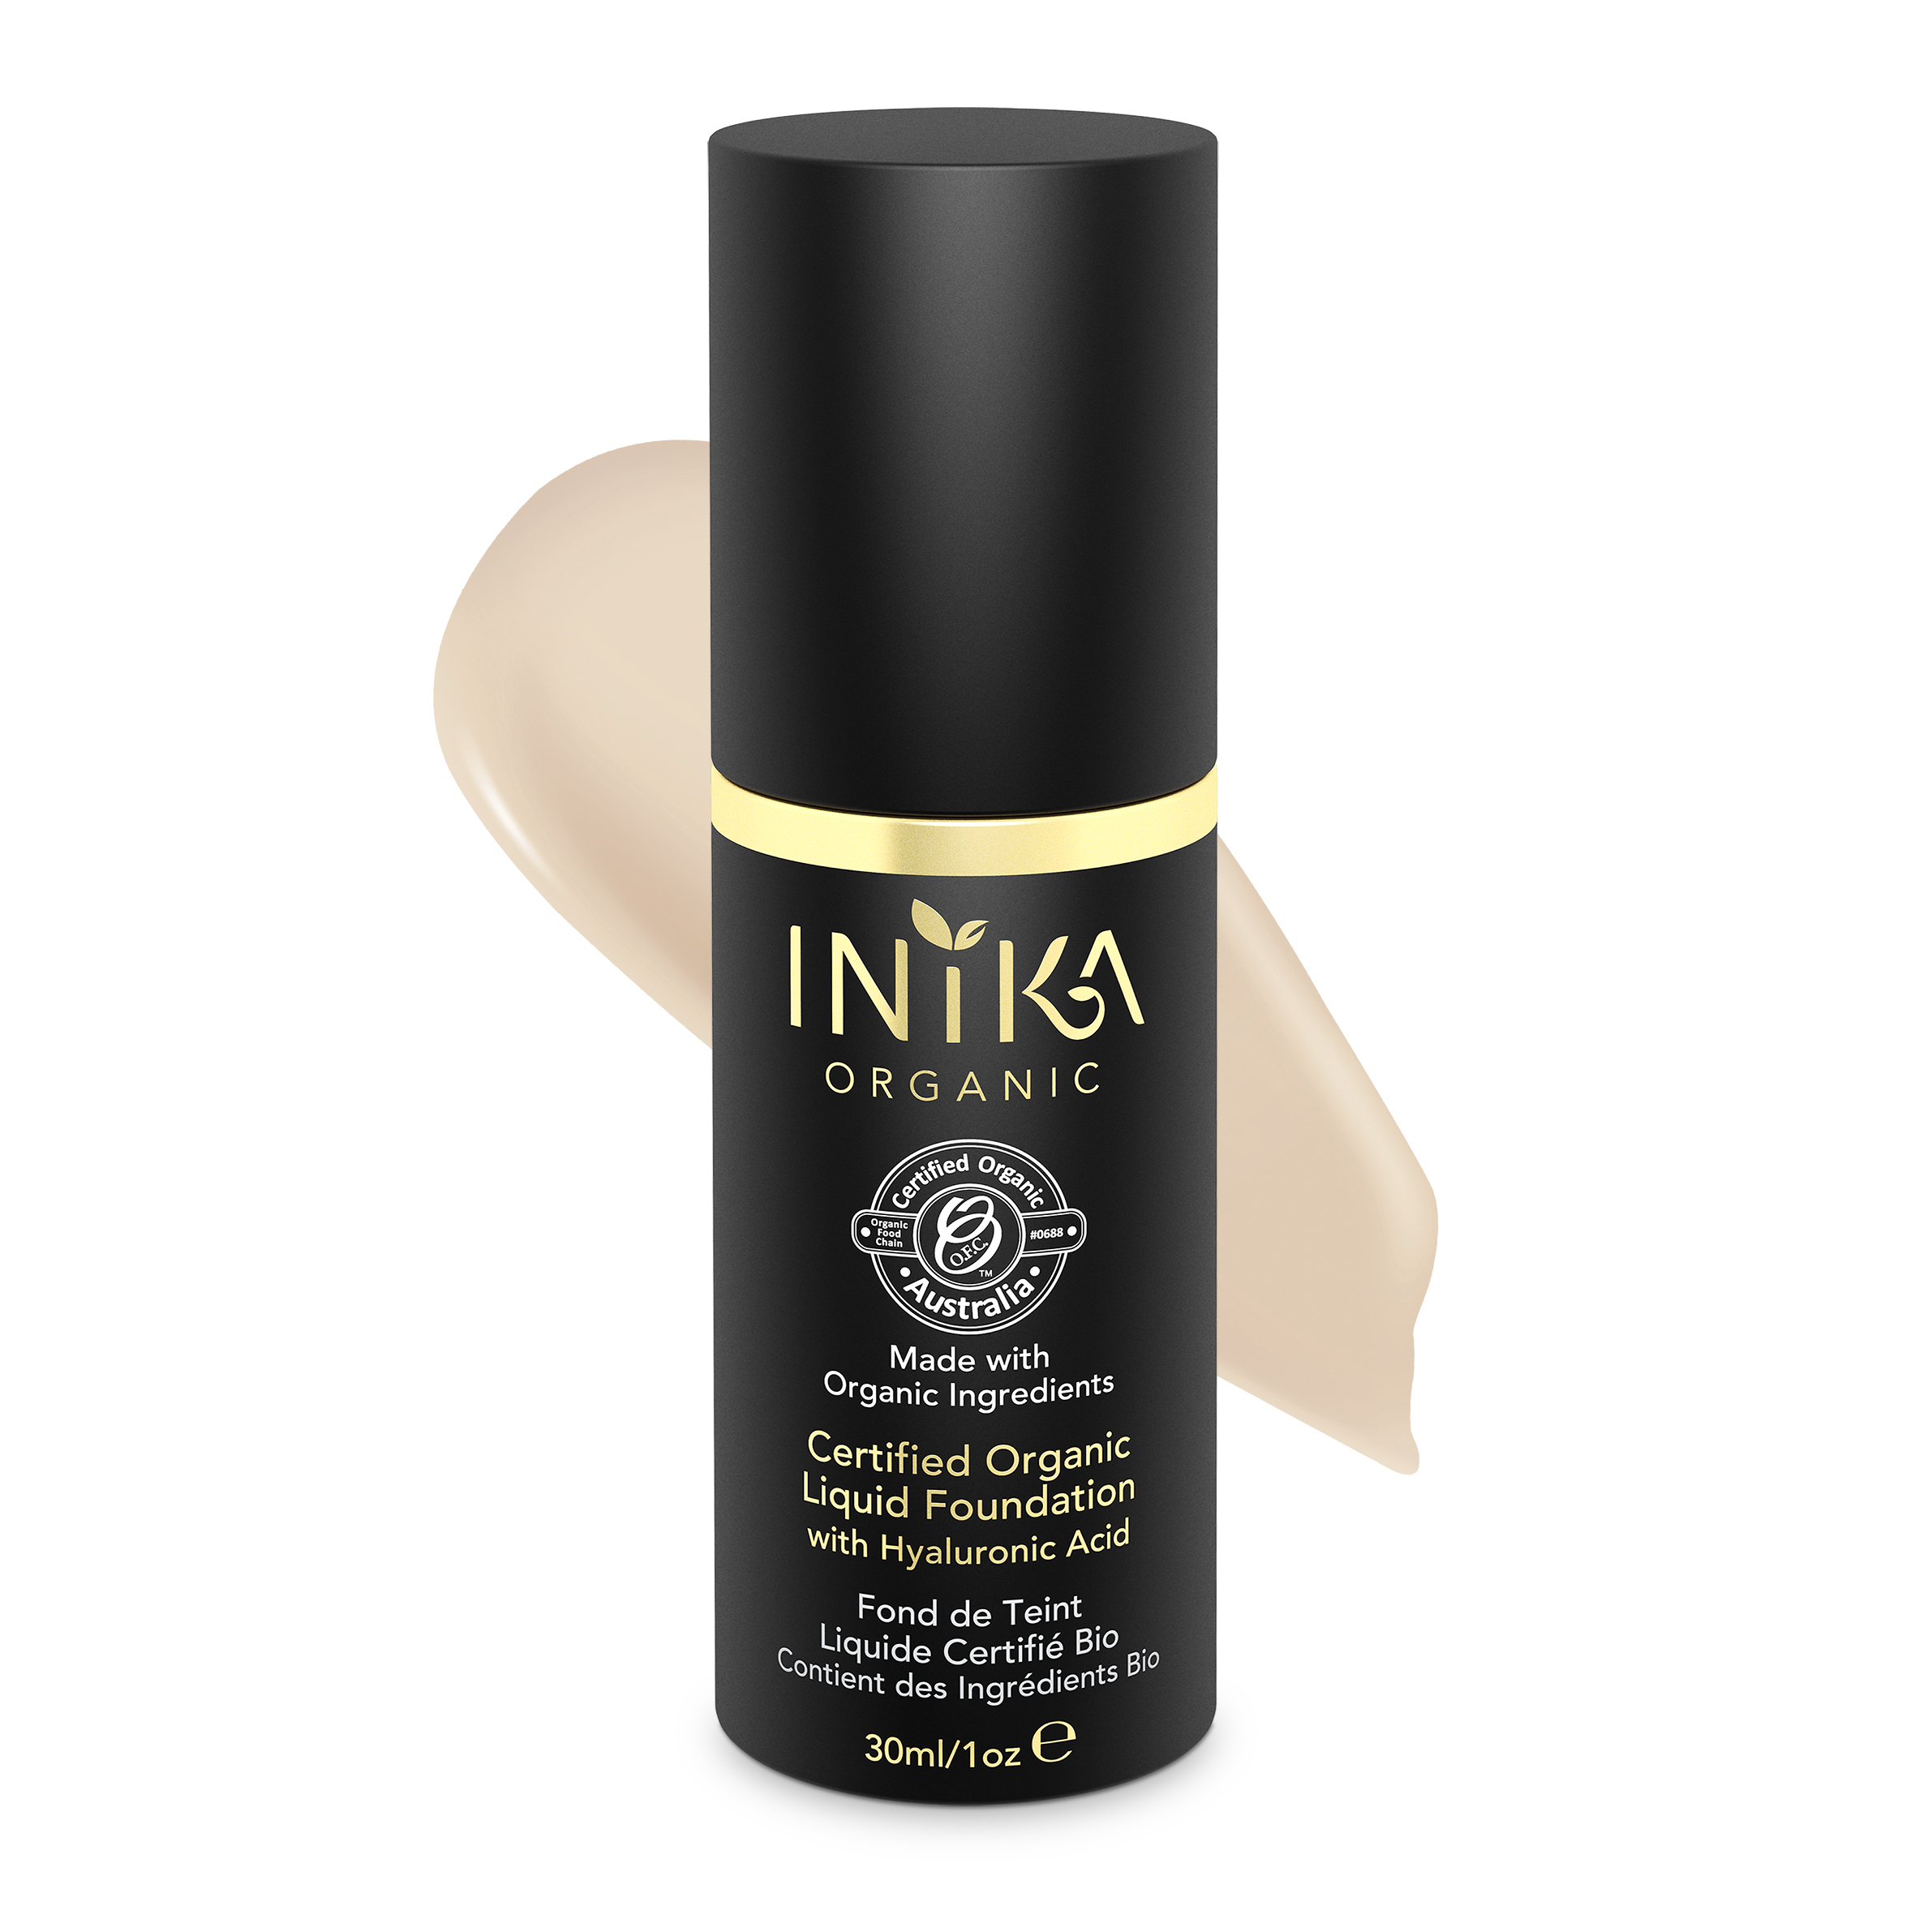 INIKA Certified Organic Liquid Foundation Porcelain 30ml With Product